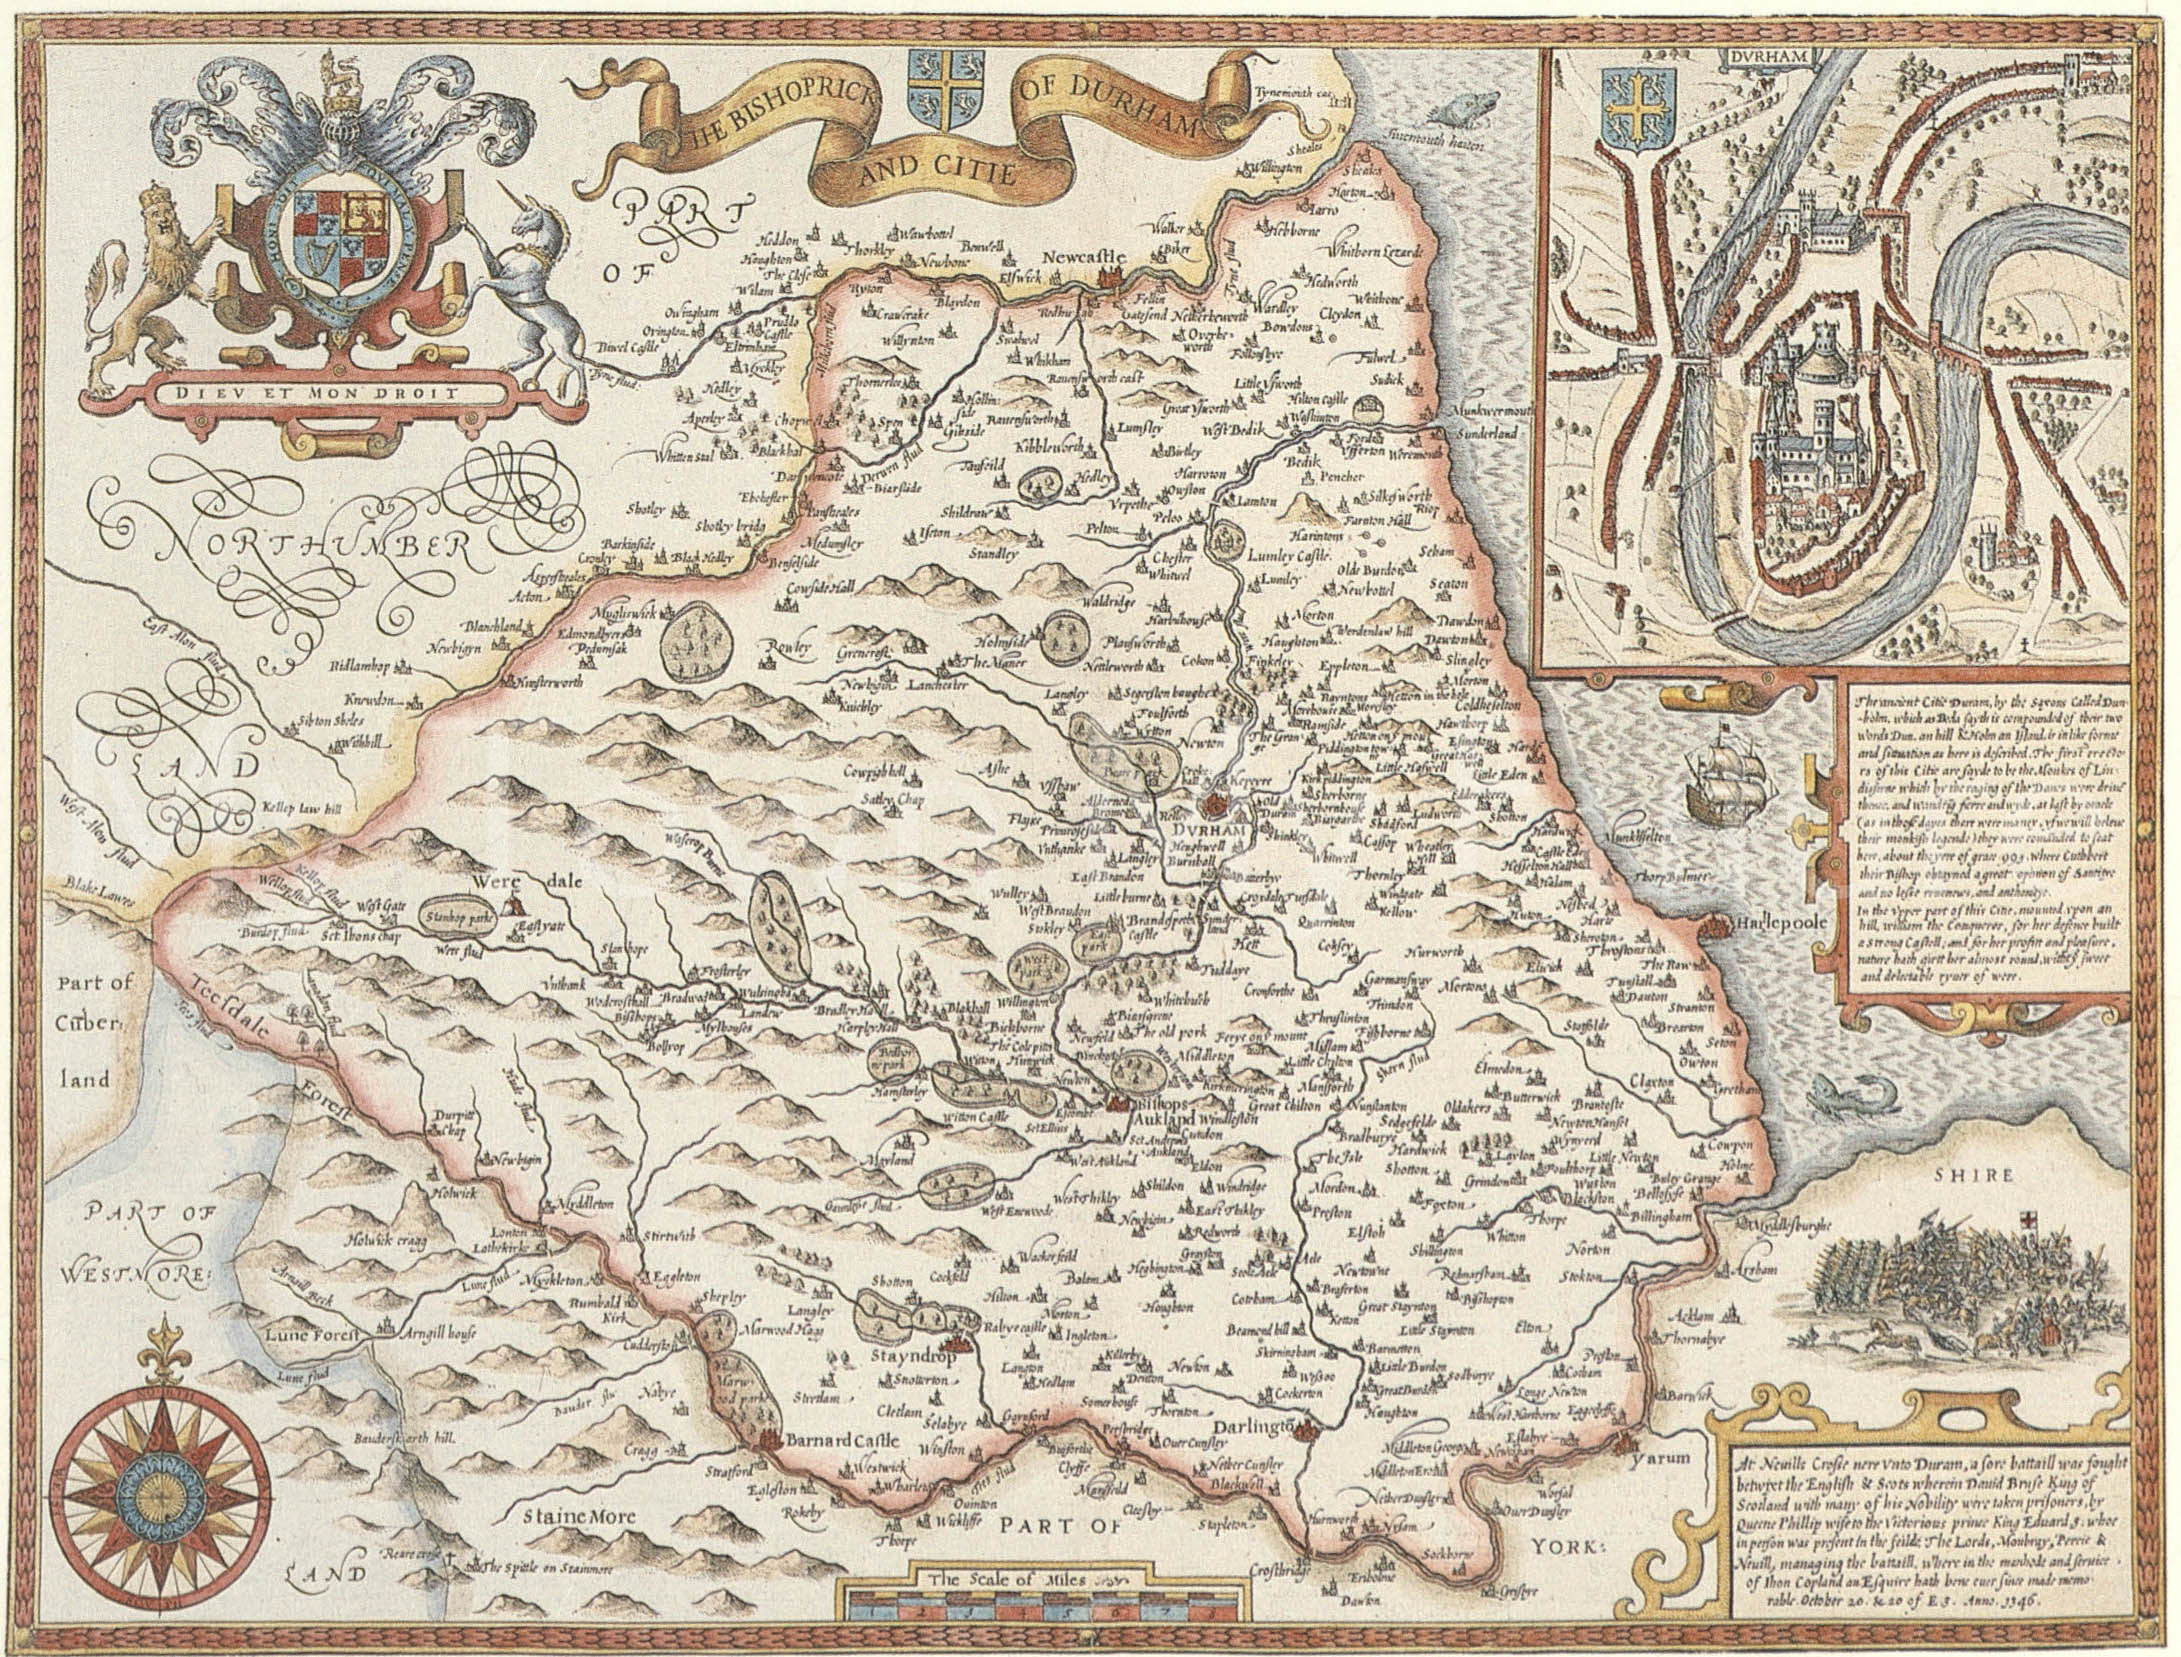 Map Of North East England, 1611, Cleveland County Museum